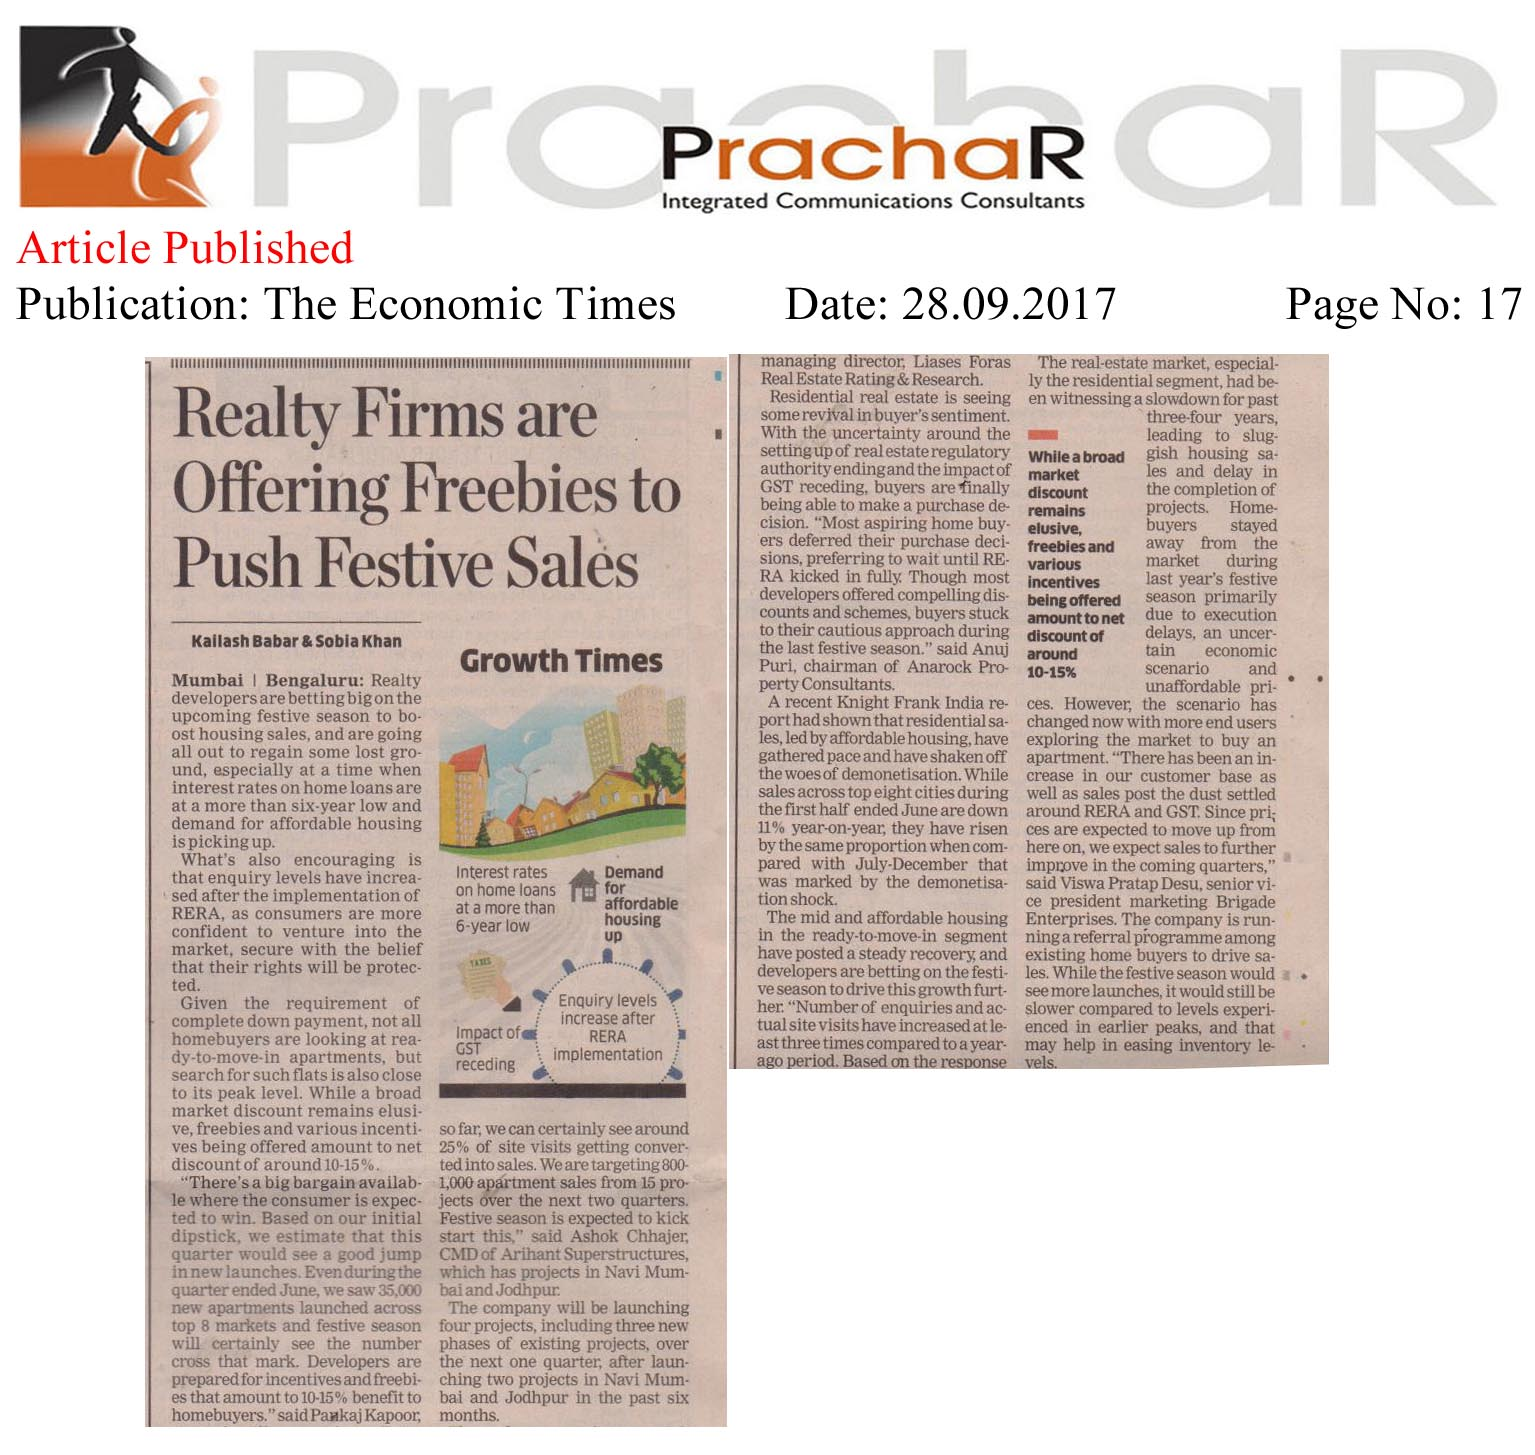 Realty Firms are Offering Freebies to Push Festive Sales—The Economic Times